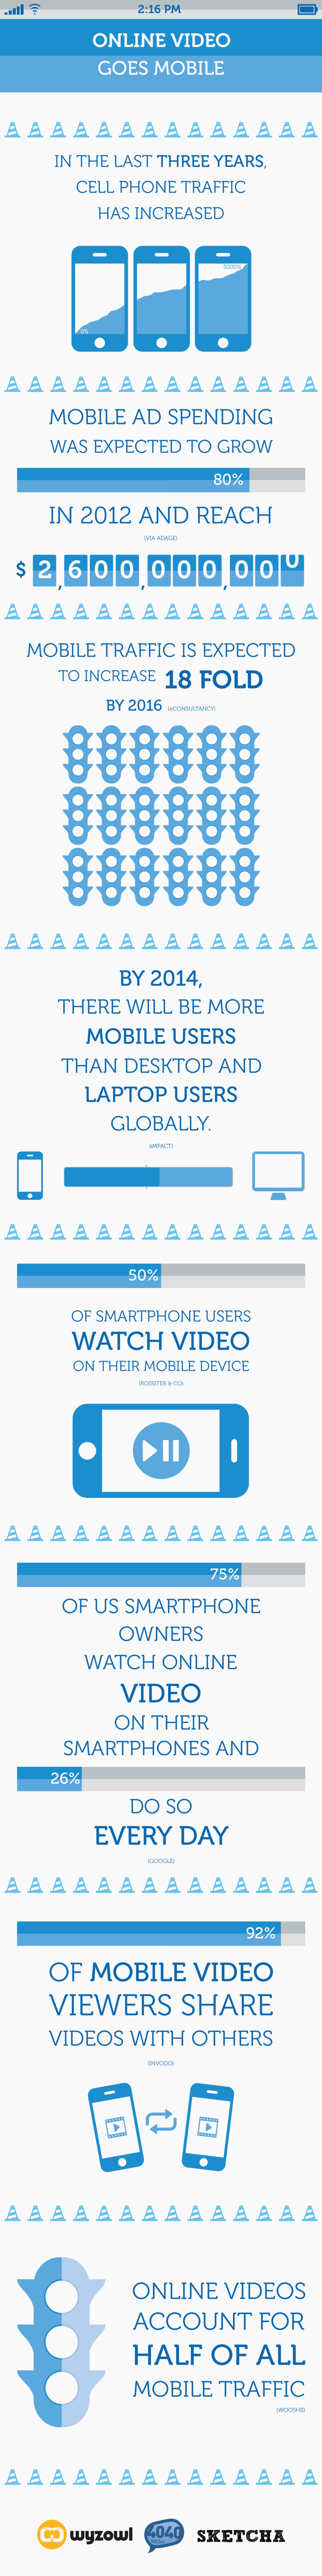 Online Video Goes Mobile Infographic